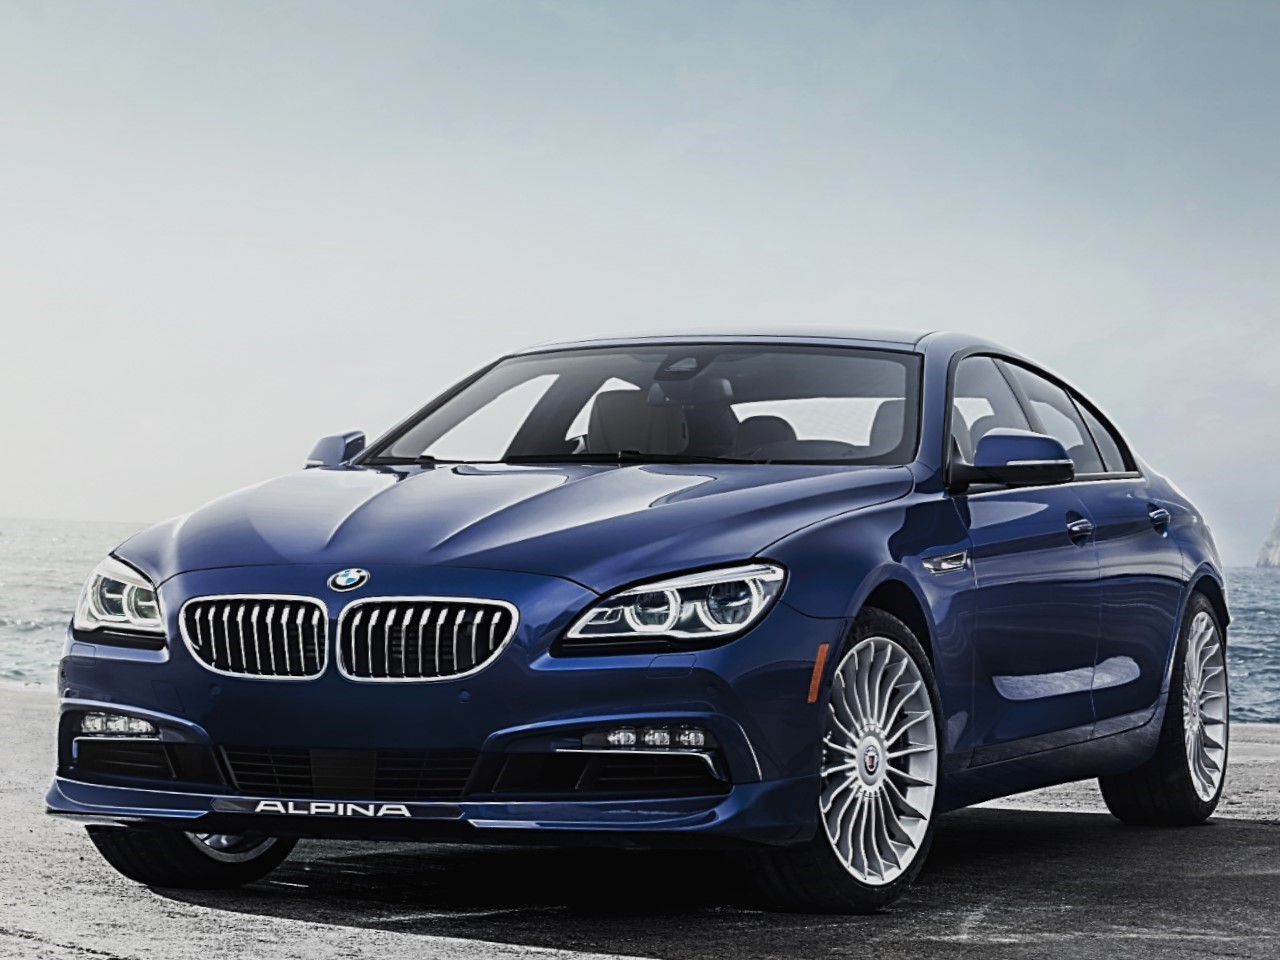 2016 Alpina B6 xDrive Gran Coupe 27